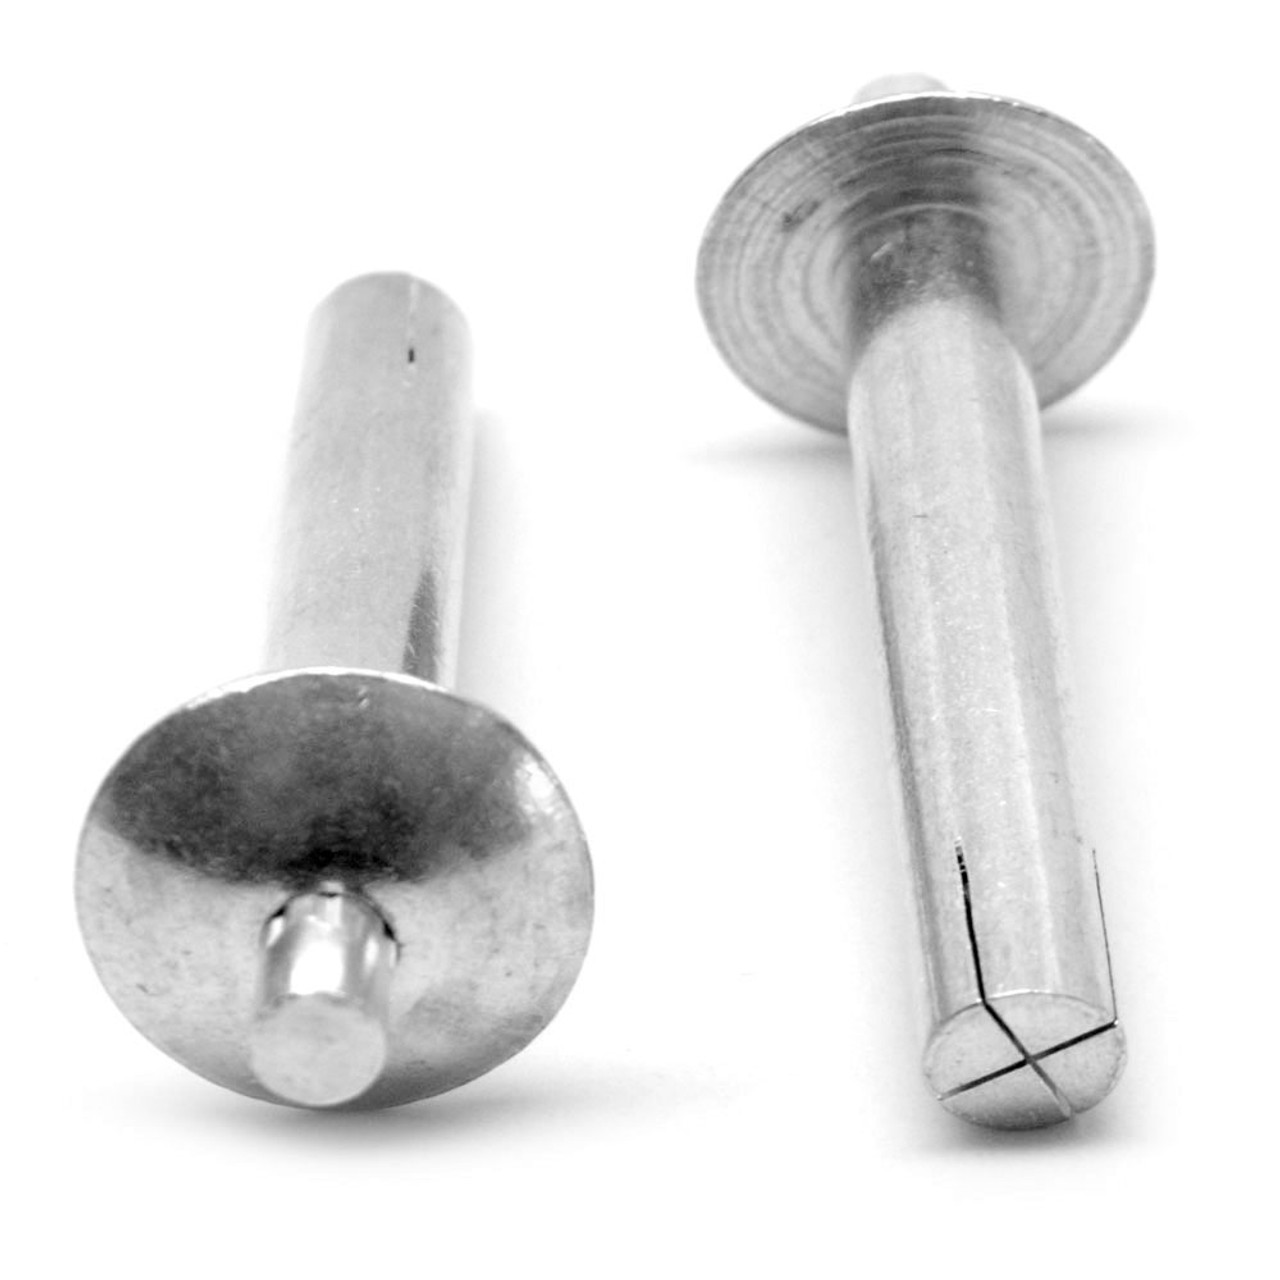 1/4 x 5/8 Drive Pin Rivet Brazier Head with Stainless Pin Aluminum